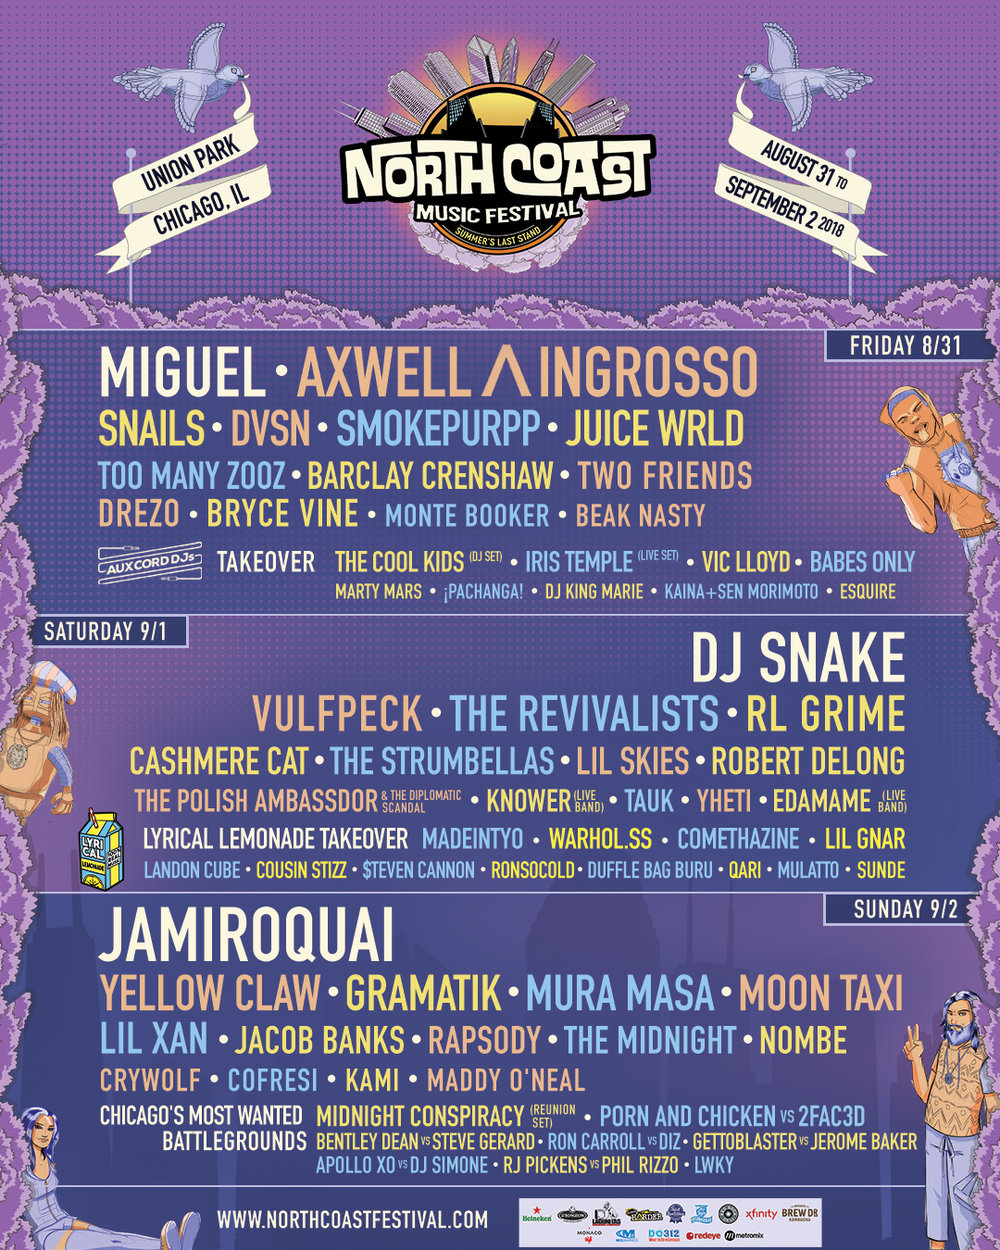 NorthCoast-Music-Festival-DVSN.jpg